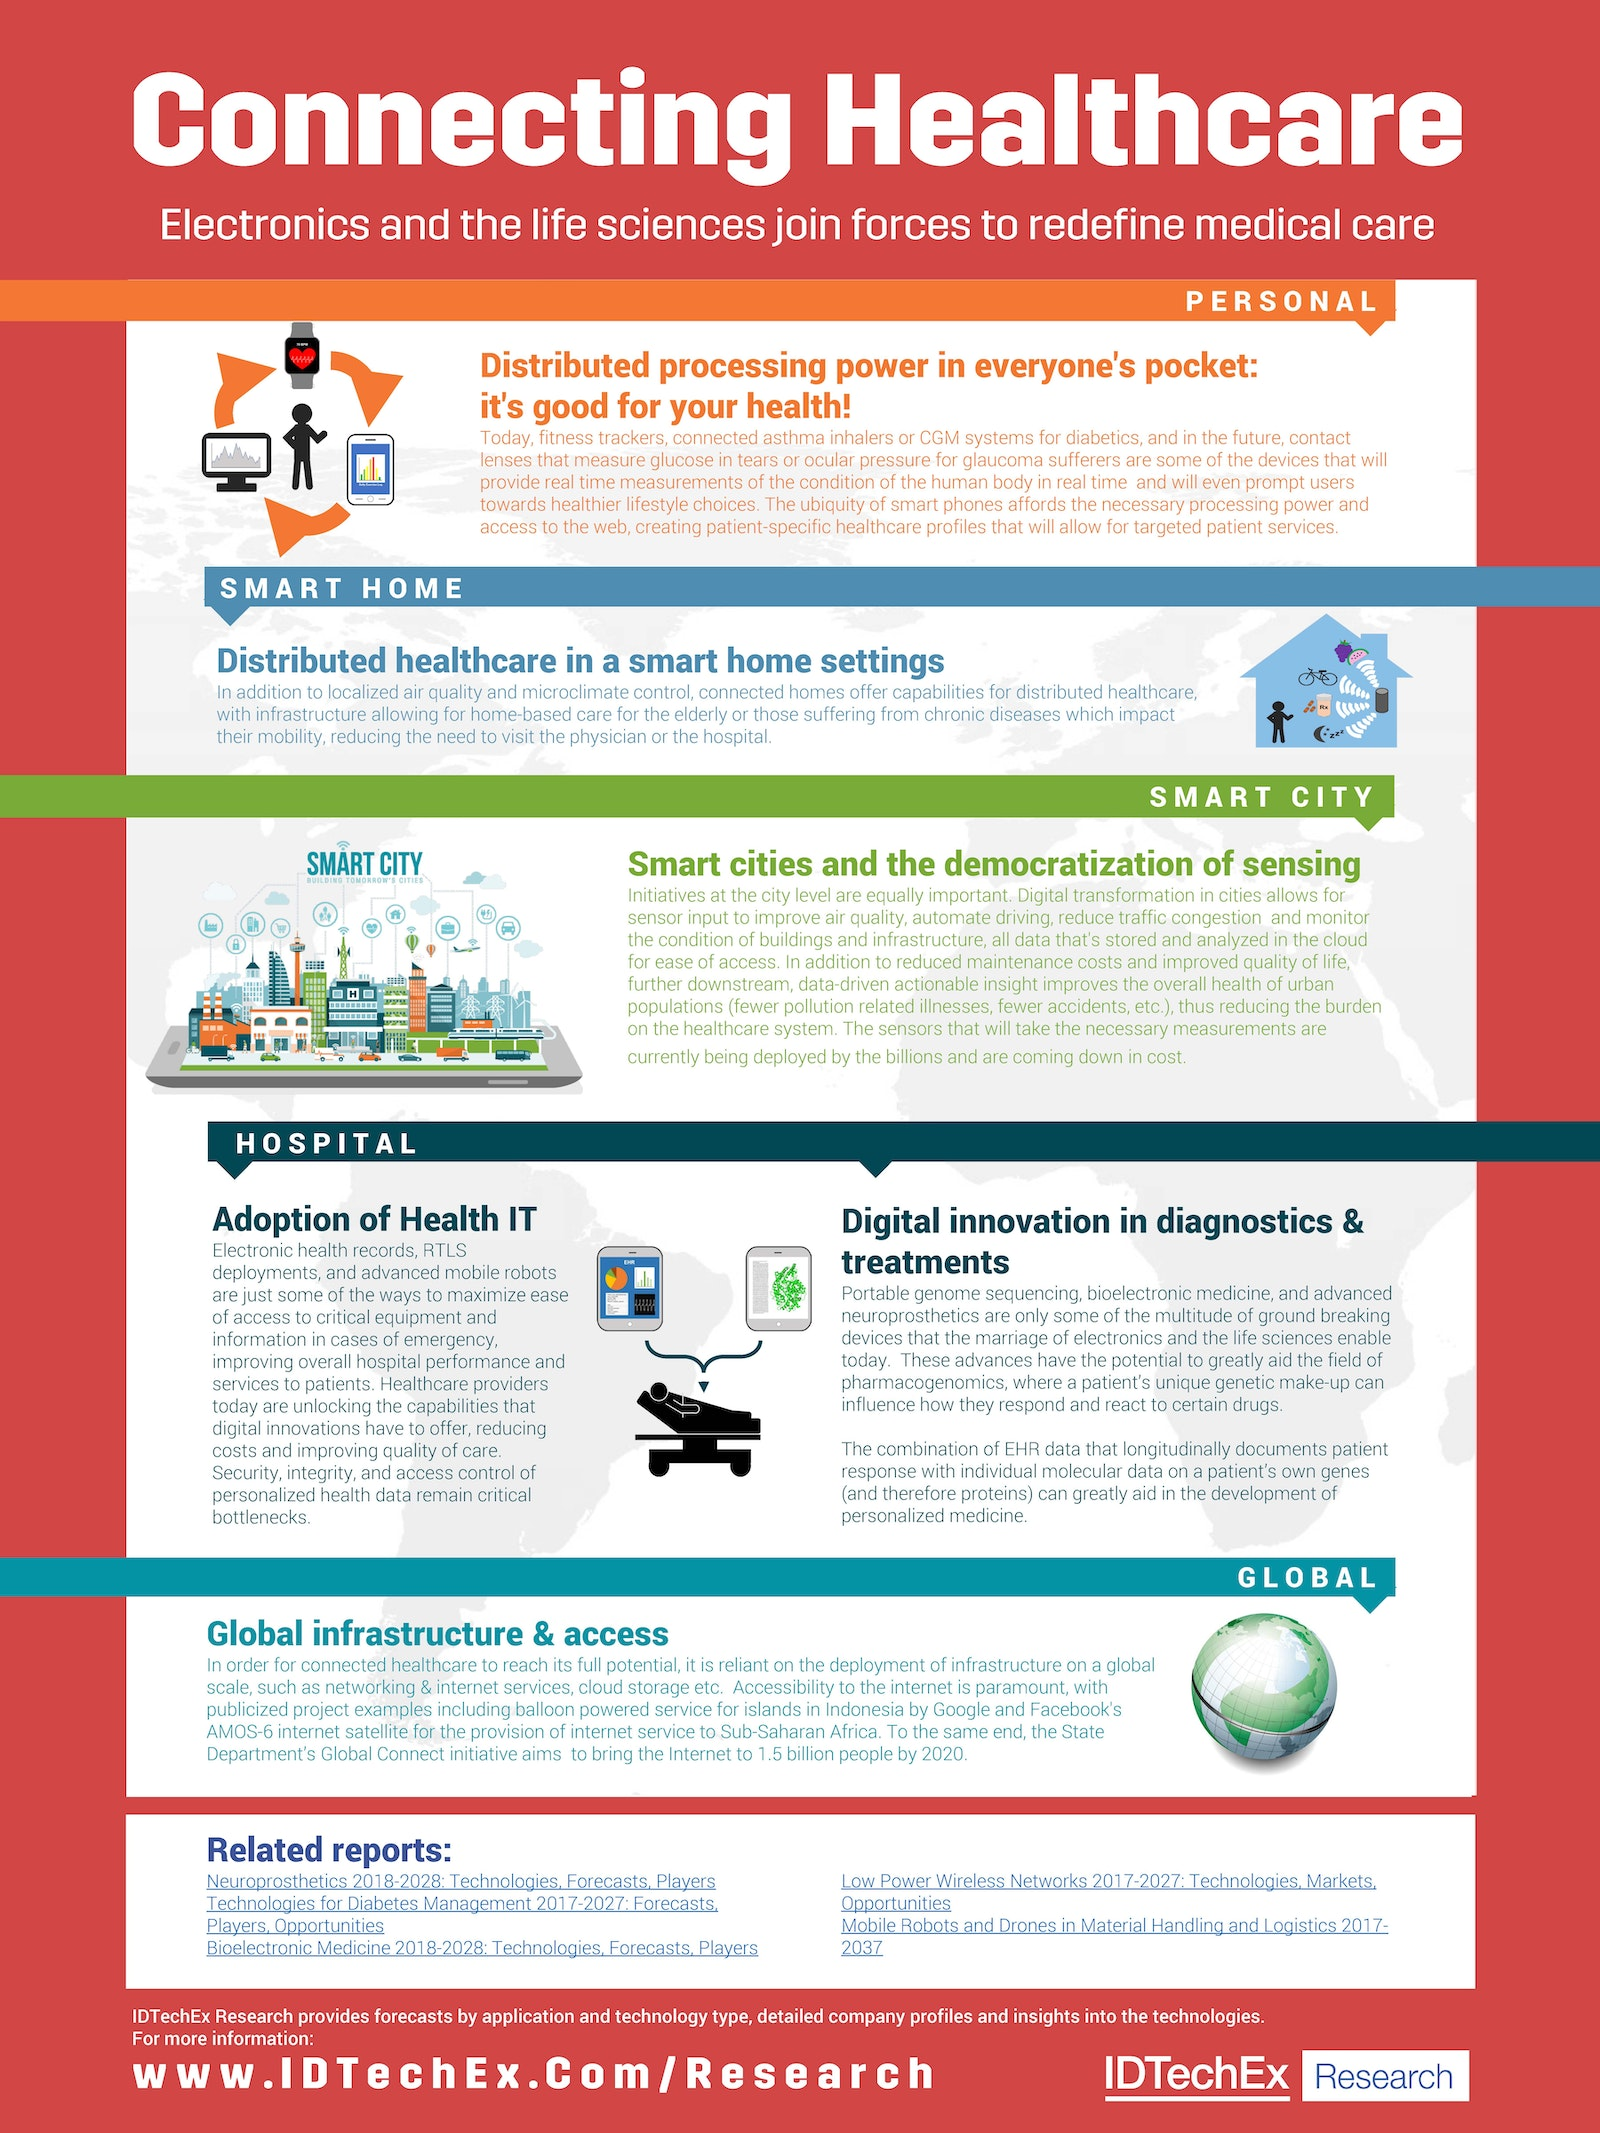 Connecting Healthcare: An IDTechEx Infographic | IDTechEx Research